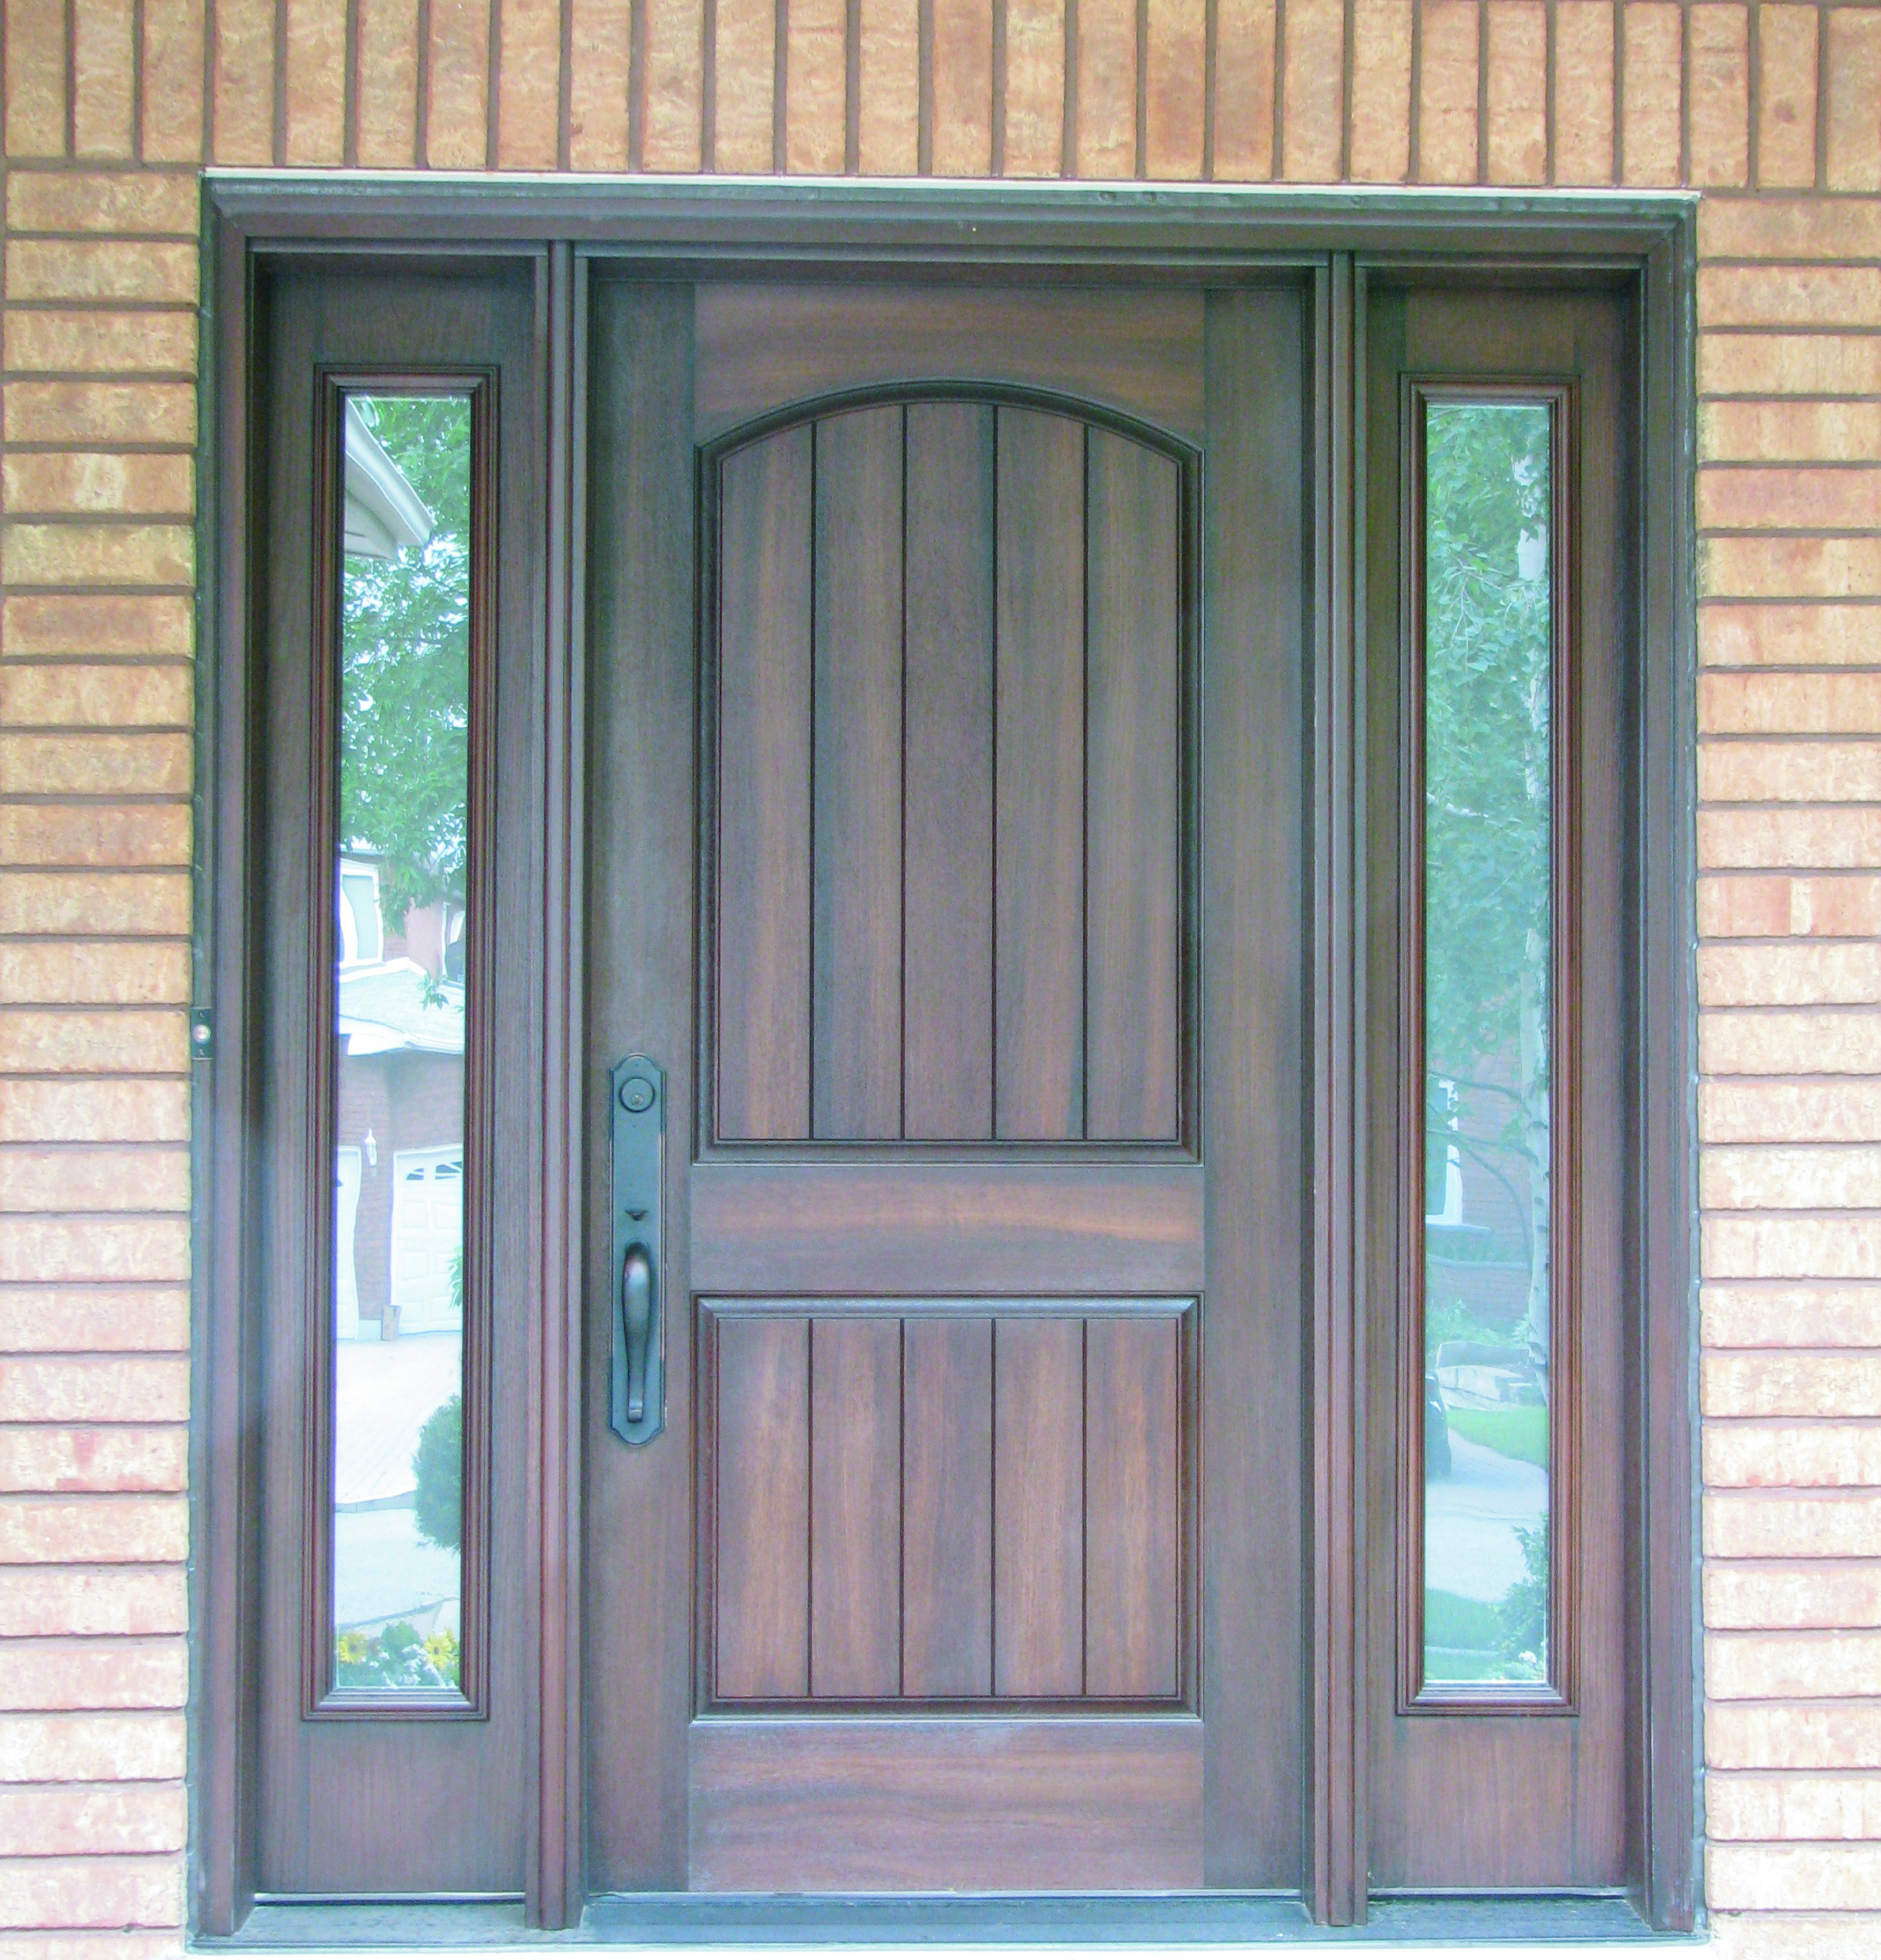 Benefits of Fiberglass Doors | Fibertec Fiberglass Windows & Doors ...